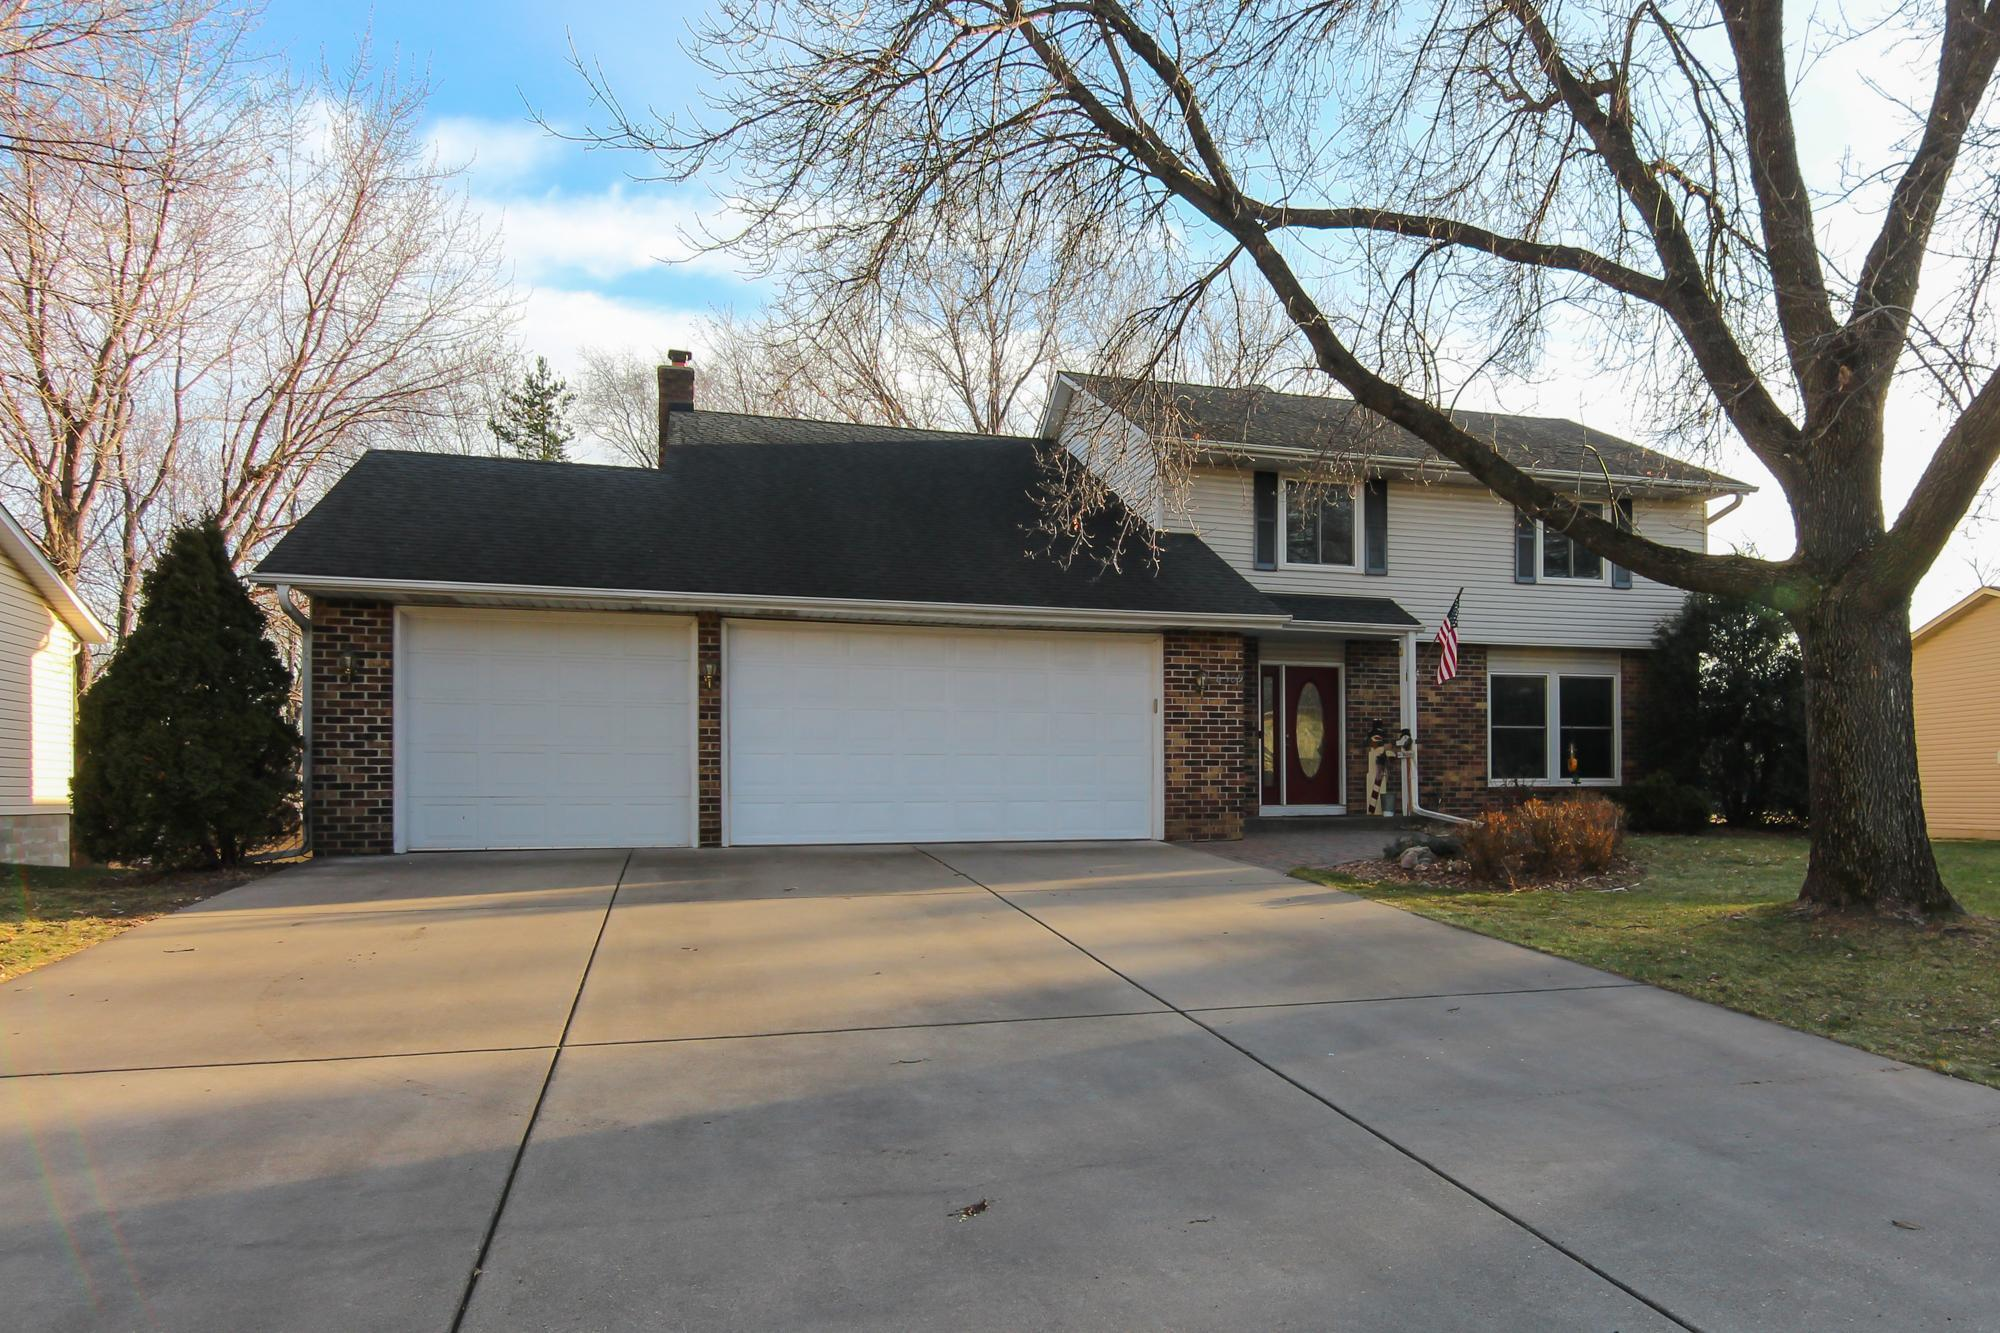 8309 W 103rd Street Property Photo - Bloomington, MN real estate listing